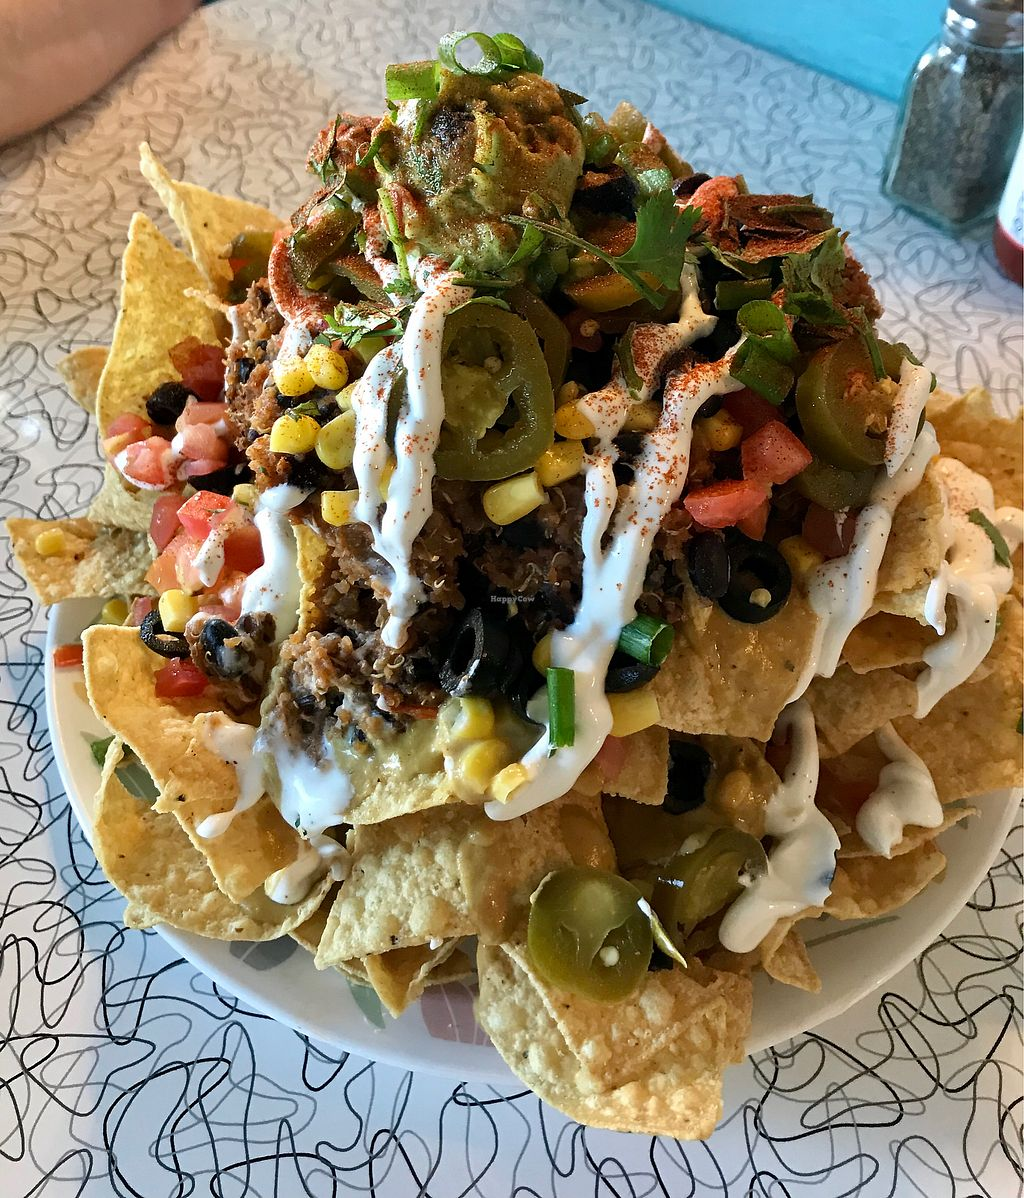 "Photo of Spiral Diner & Bakery  by <a href=""/members/profile/PulliamPrepper"">PulliamPrepper</a> <br/>Super nachos  <br/> November 5, 2017  - <a href='/contact/abuse/image/2539/321904'>Report</a>"